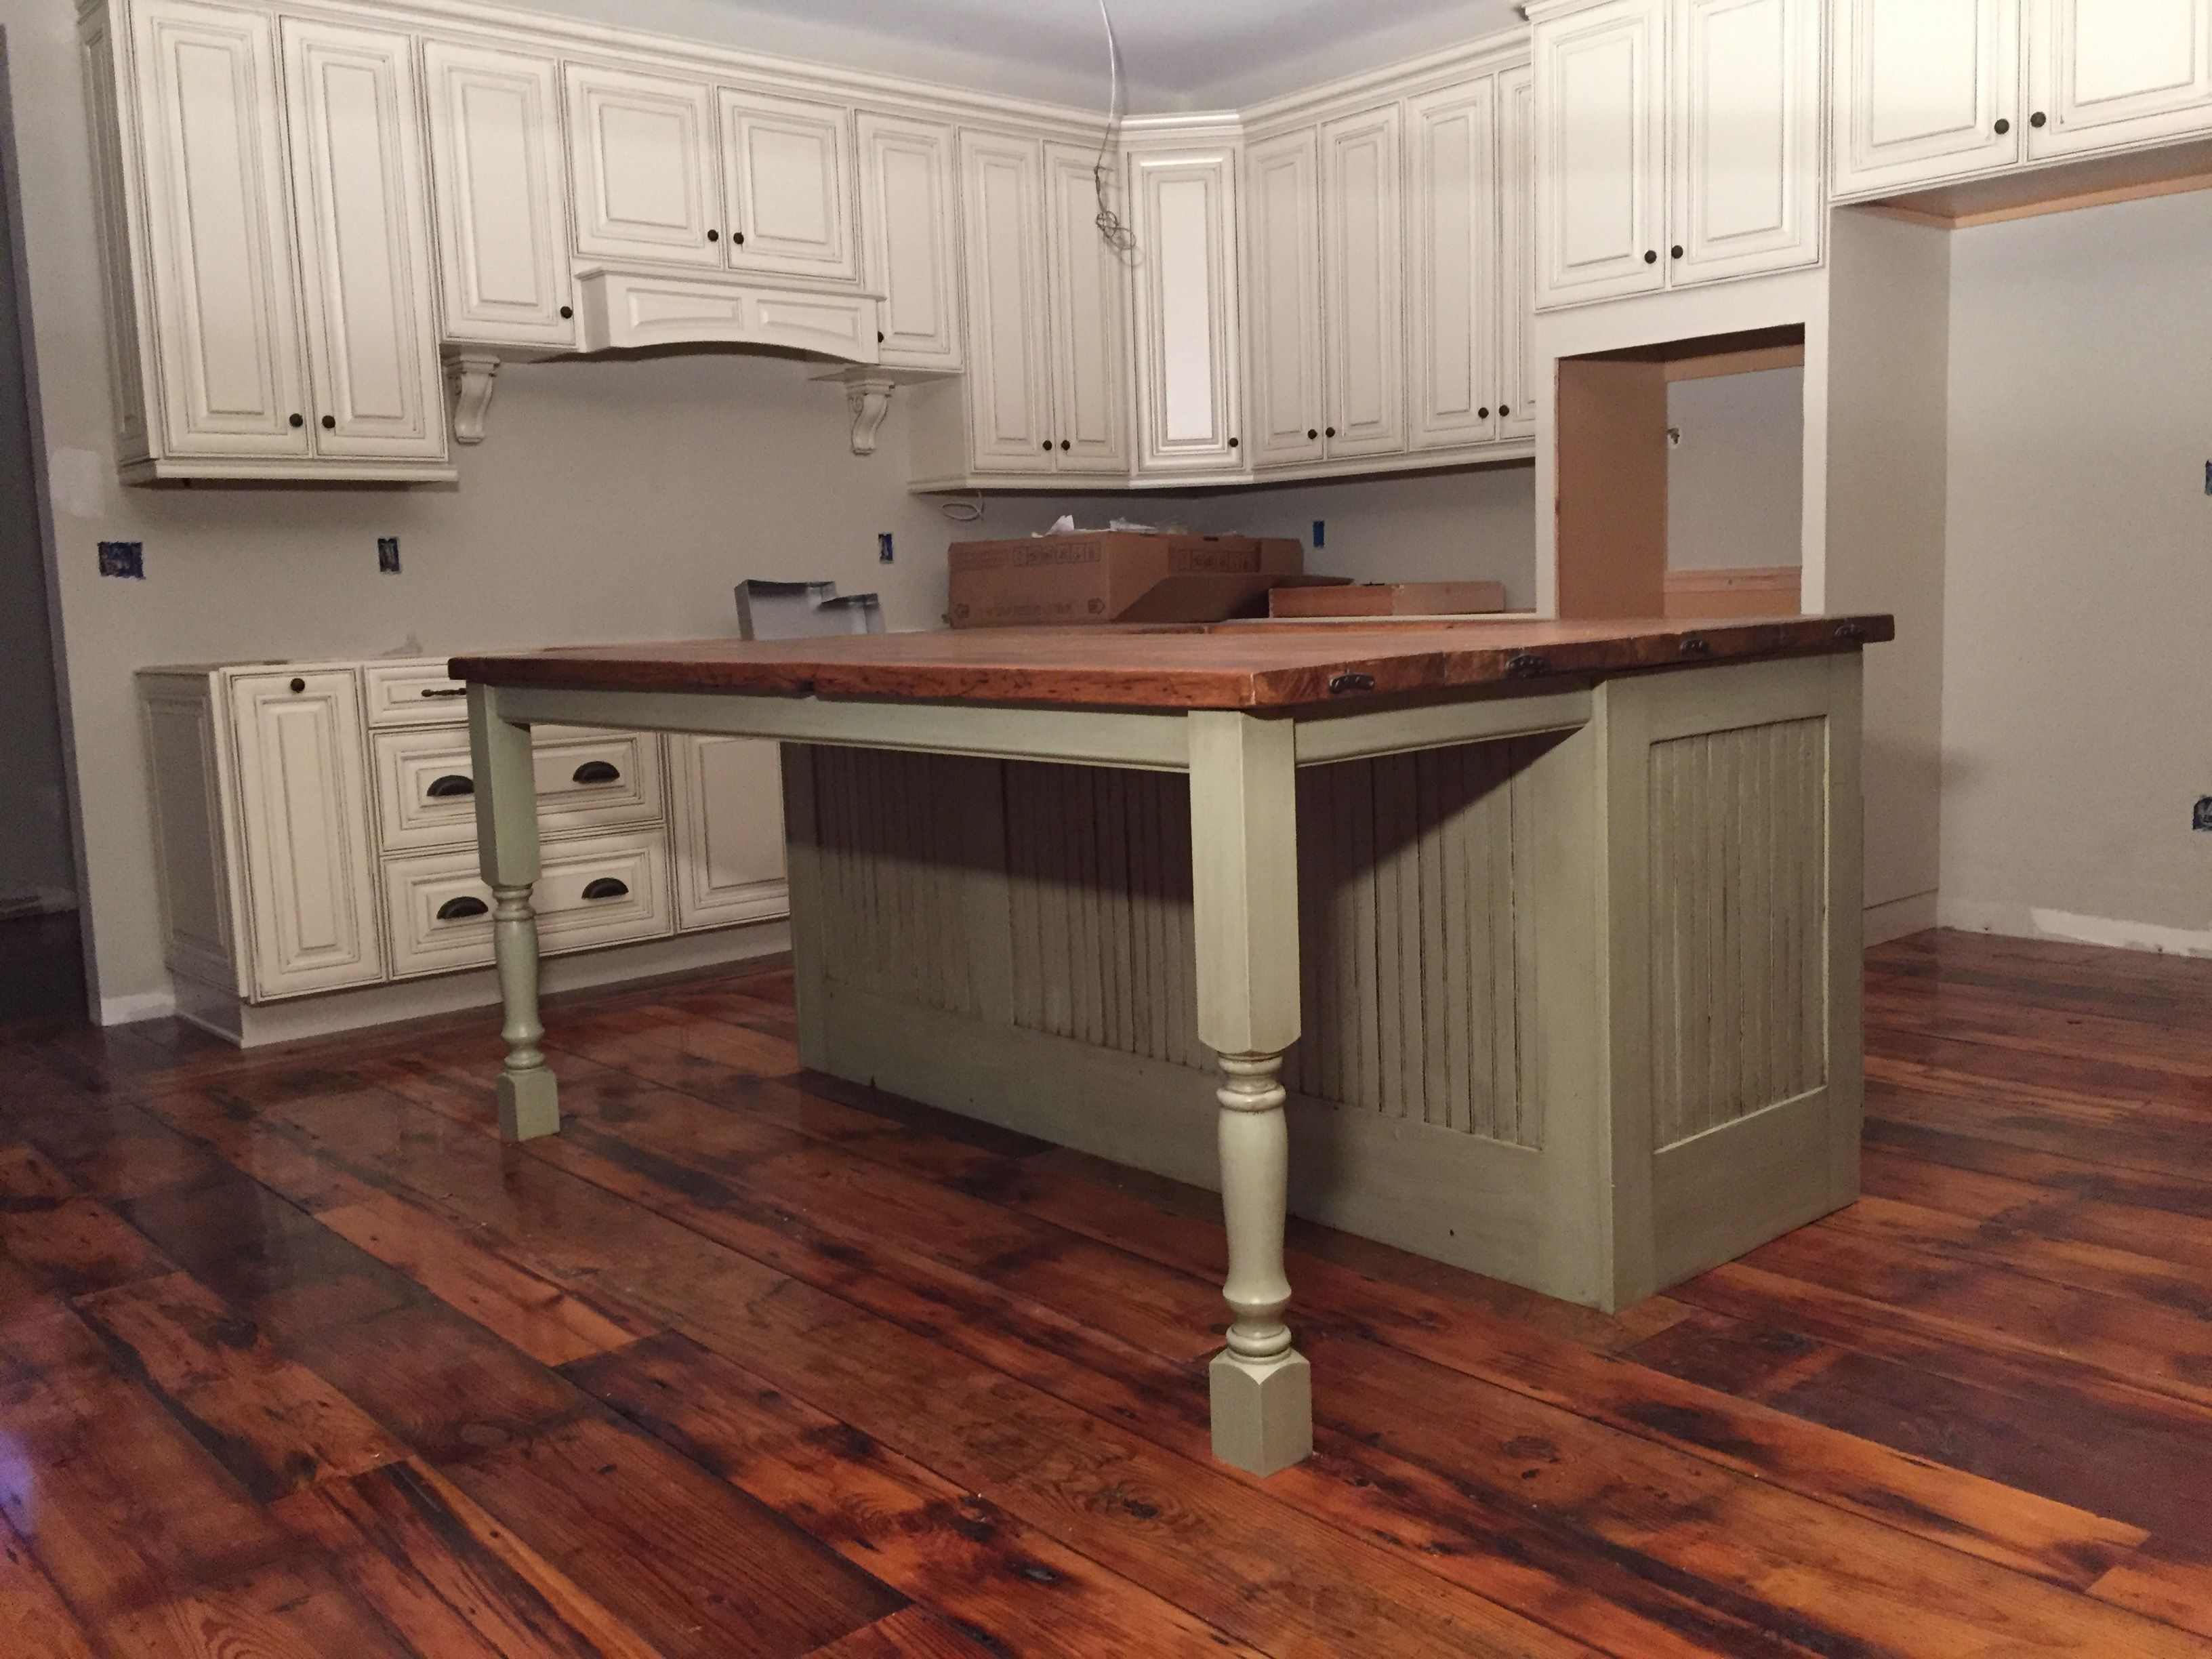 Reclaimed Kitchen Island With Porch Post Legs All Handmade All Reclaimed We Custo Kitchen Appliances Design Kitchen Decor Apartment Kitchen Island With Legs